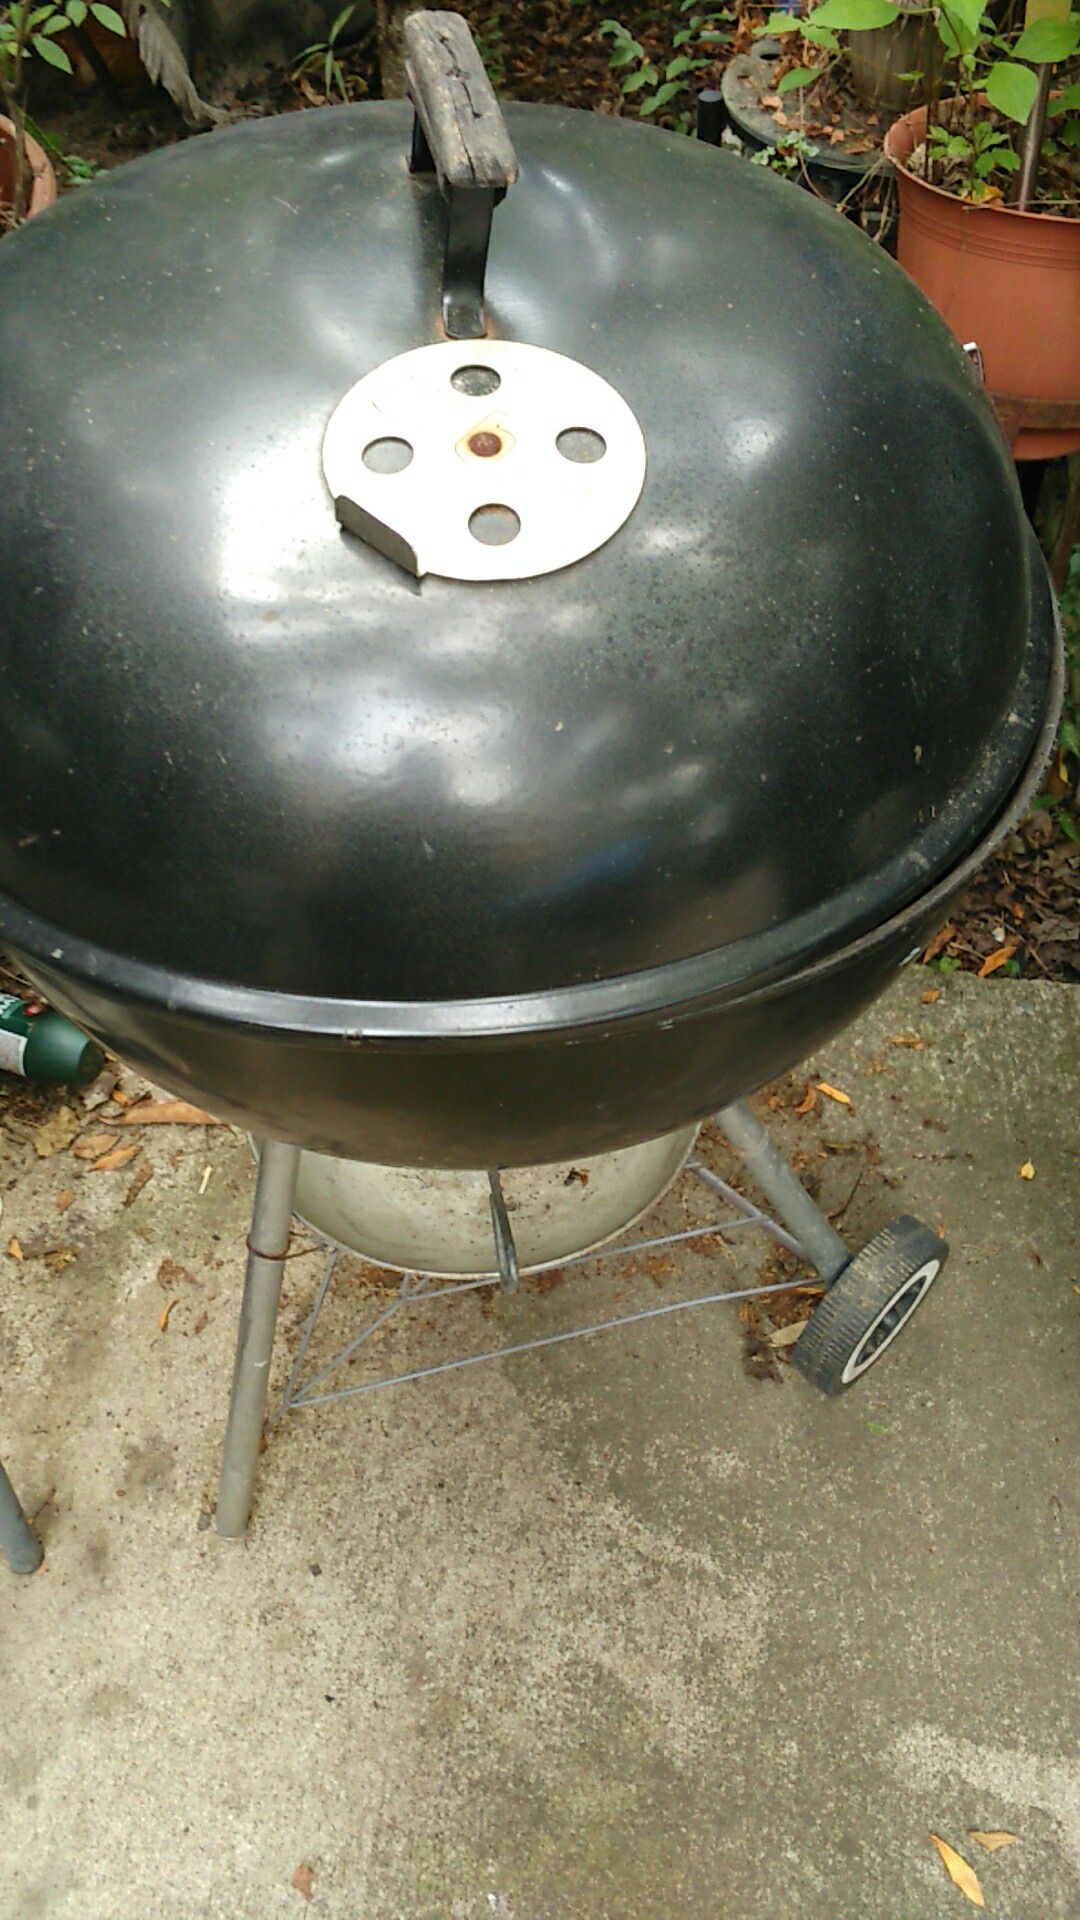 $35 deep dish Weber grill large charcoal also have a lot of other charcoal grills Kingsford